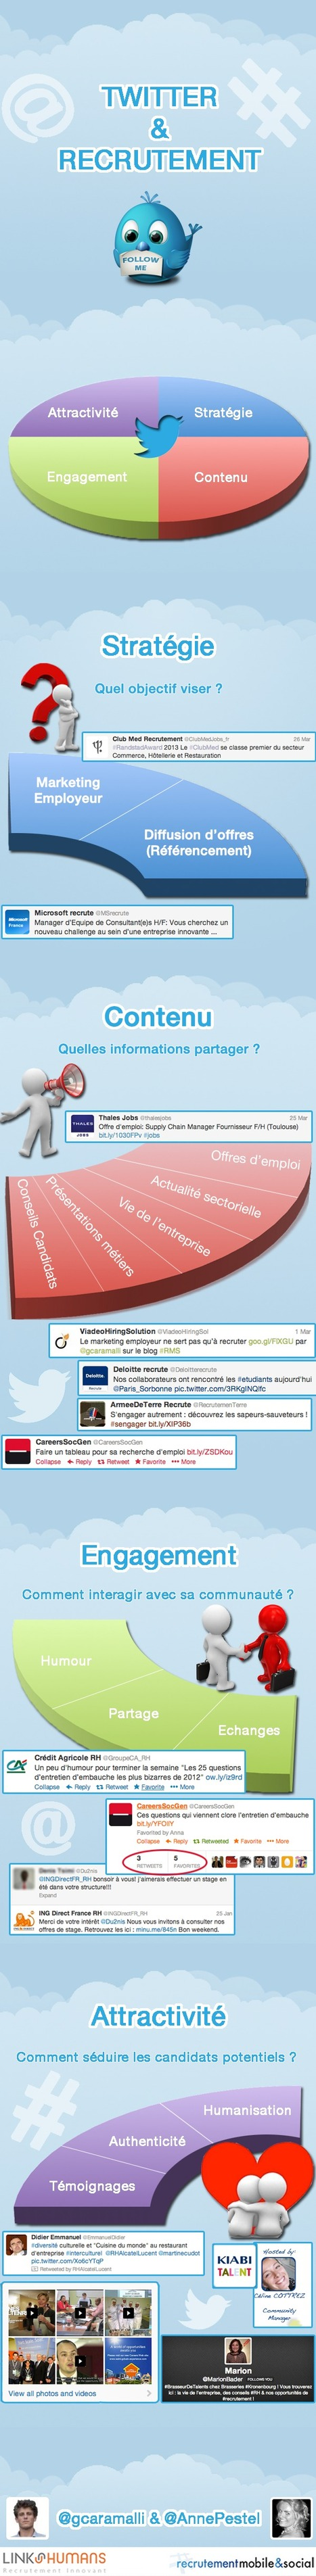 Etude des Comptes Twitter Carrières [Infographie] | Didactics and Technology in Education | Scoop.it